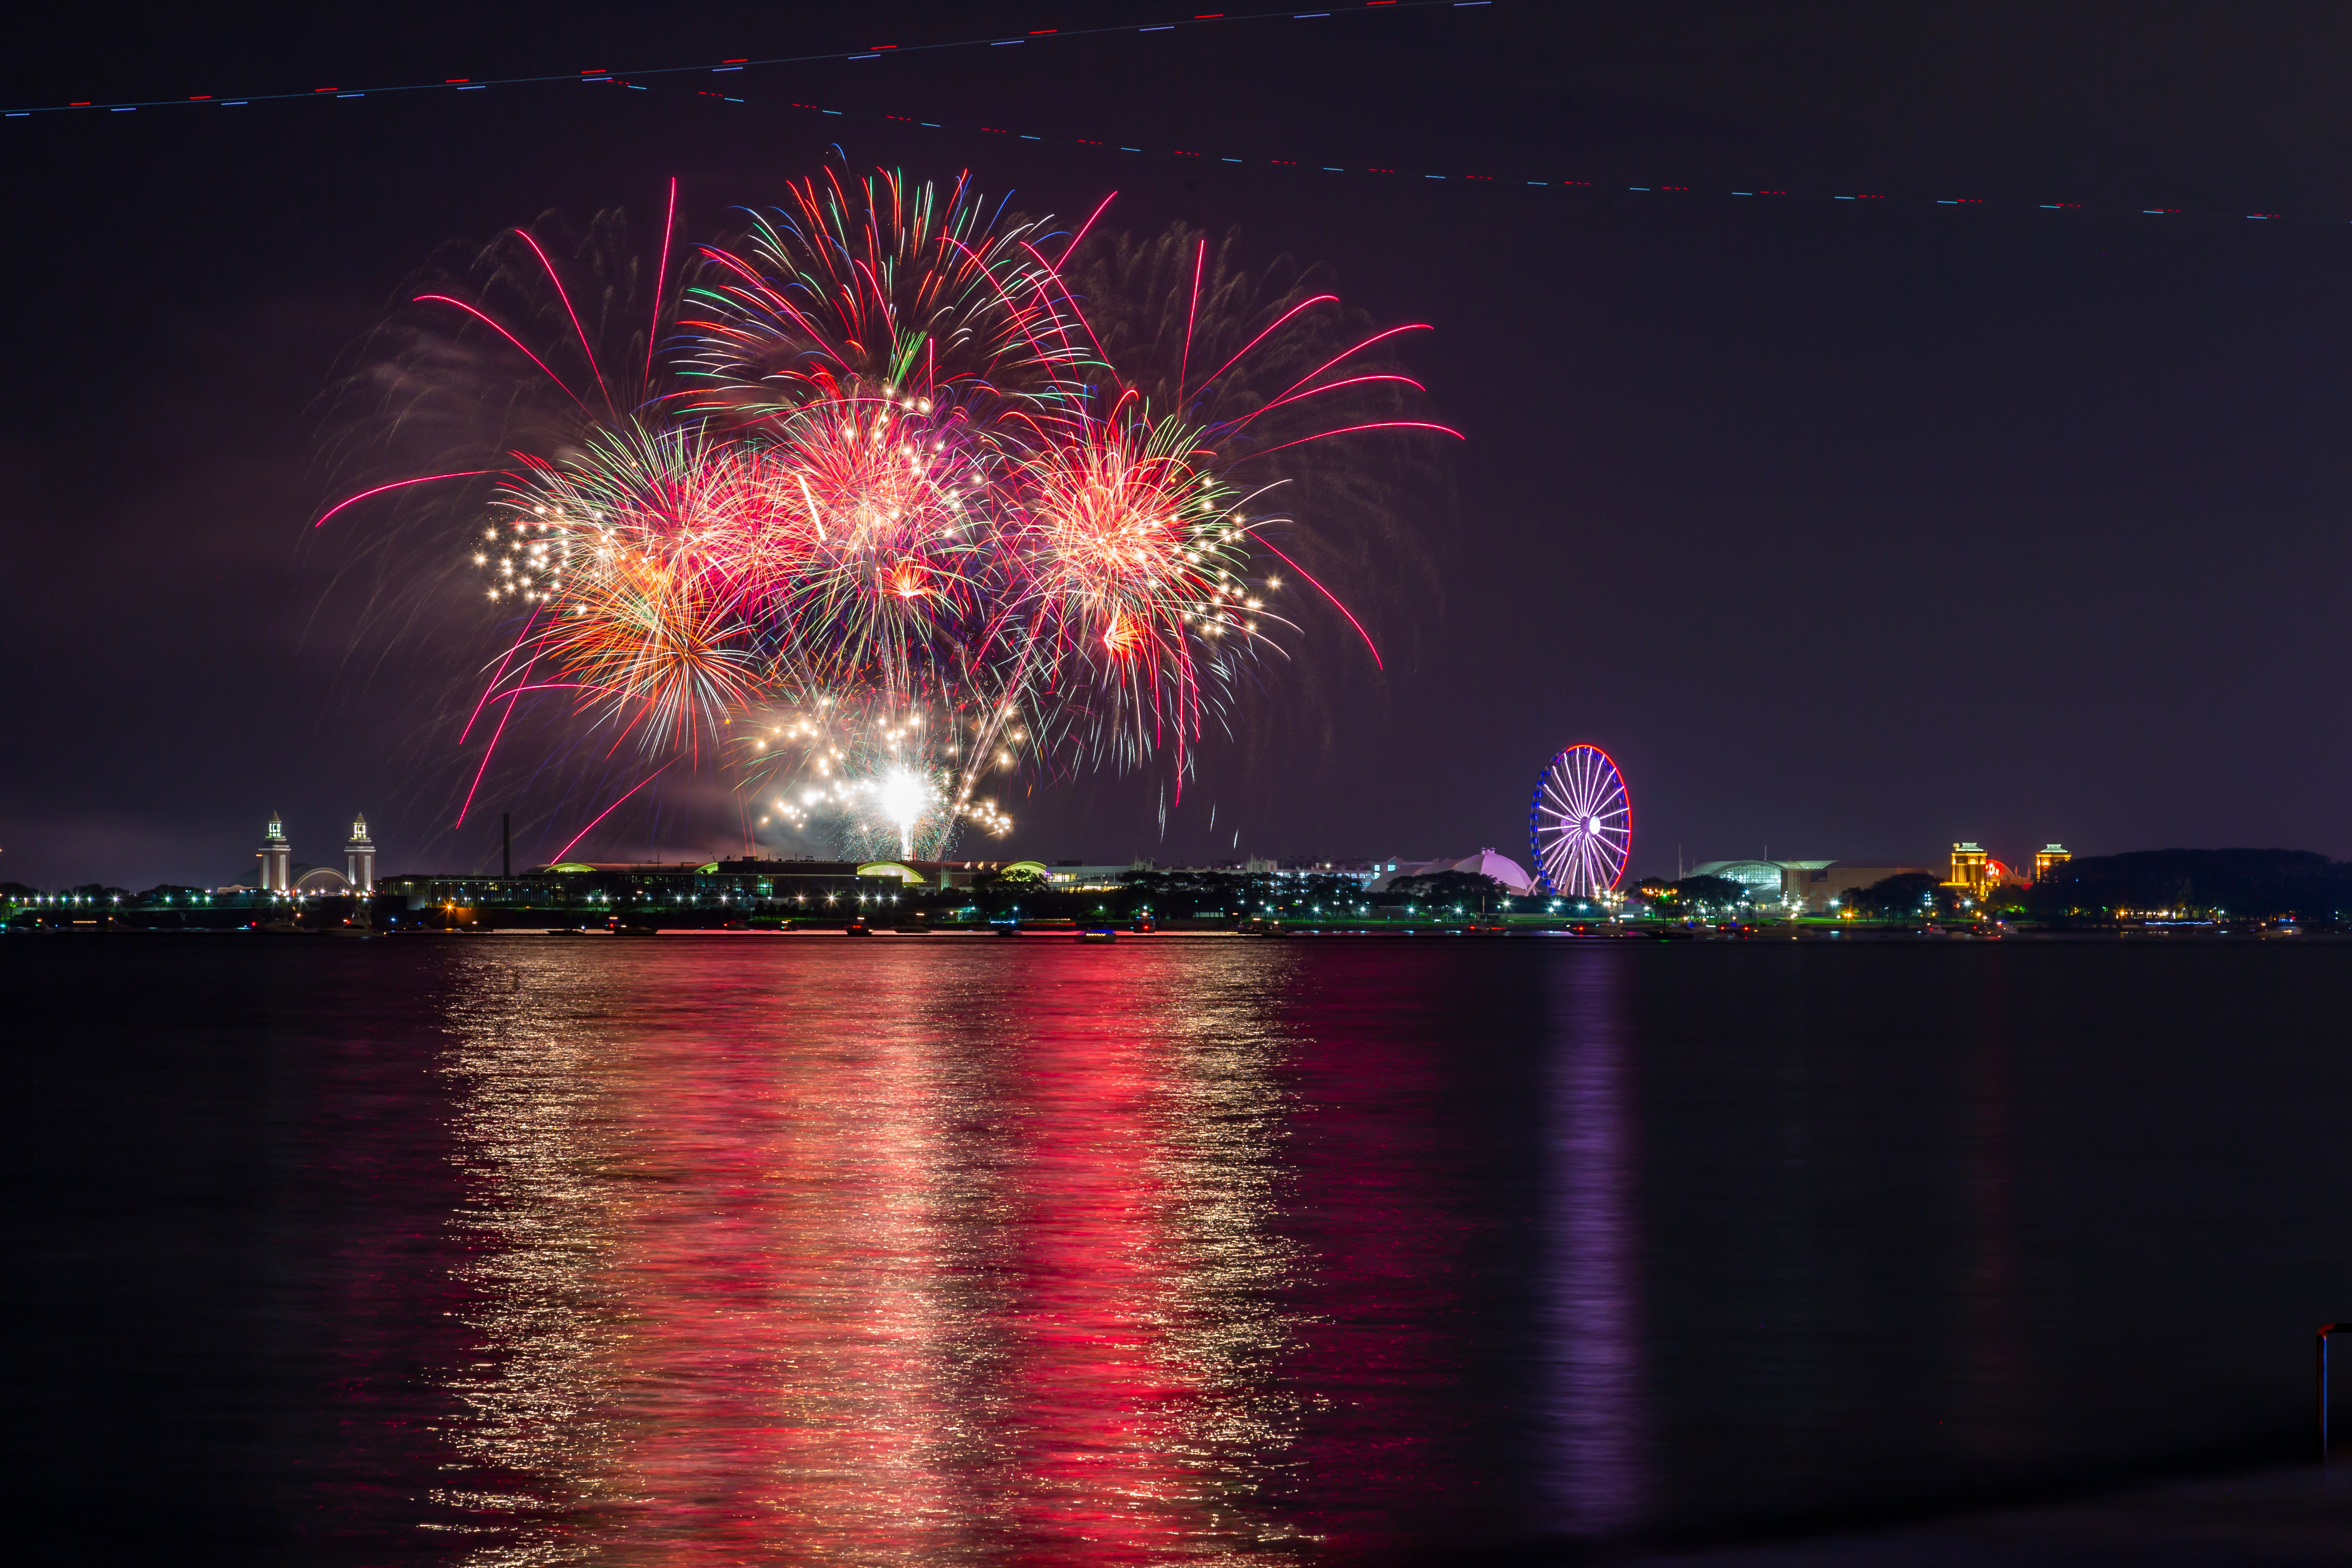 Colorful fireworks explode over Lake Michigan and Navy Pier at night.